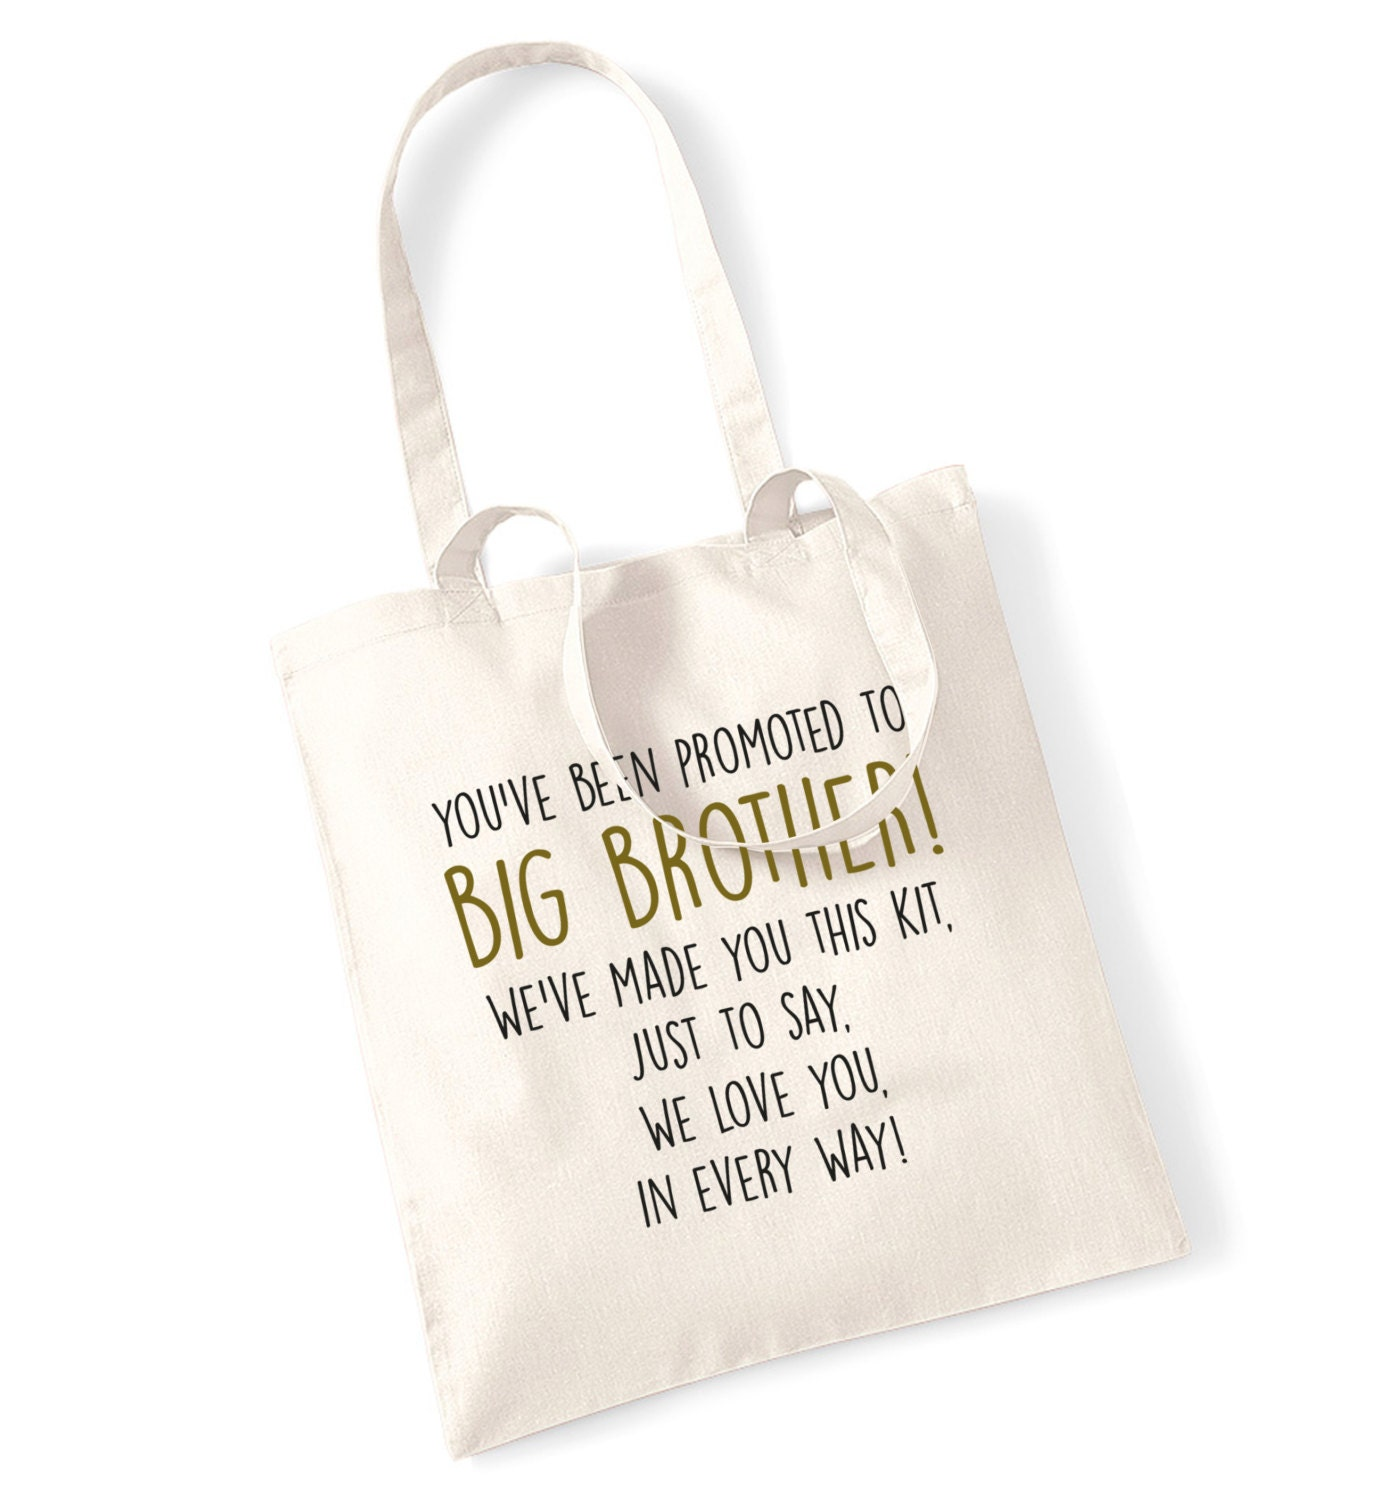 Big brother survival kit tote bag promoted we love you in every way poem newborn sibling sister cute family daughter son mum dad parent 279